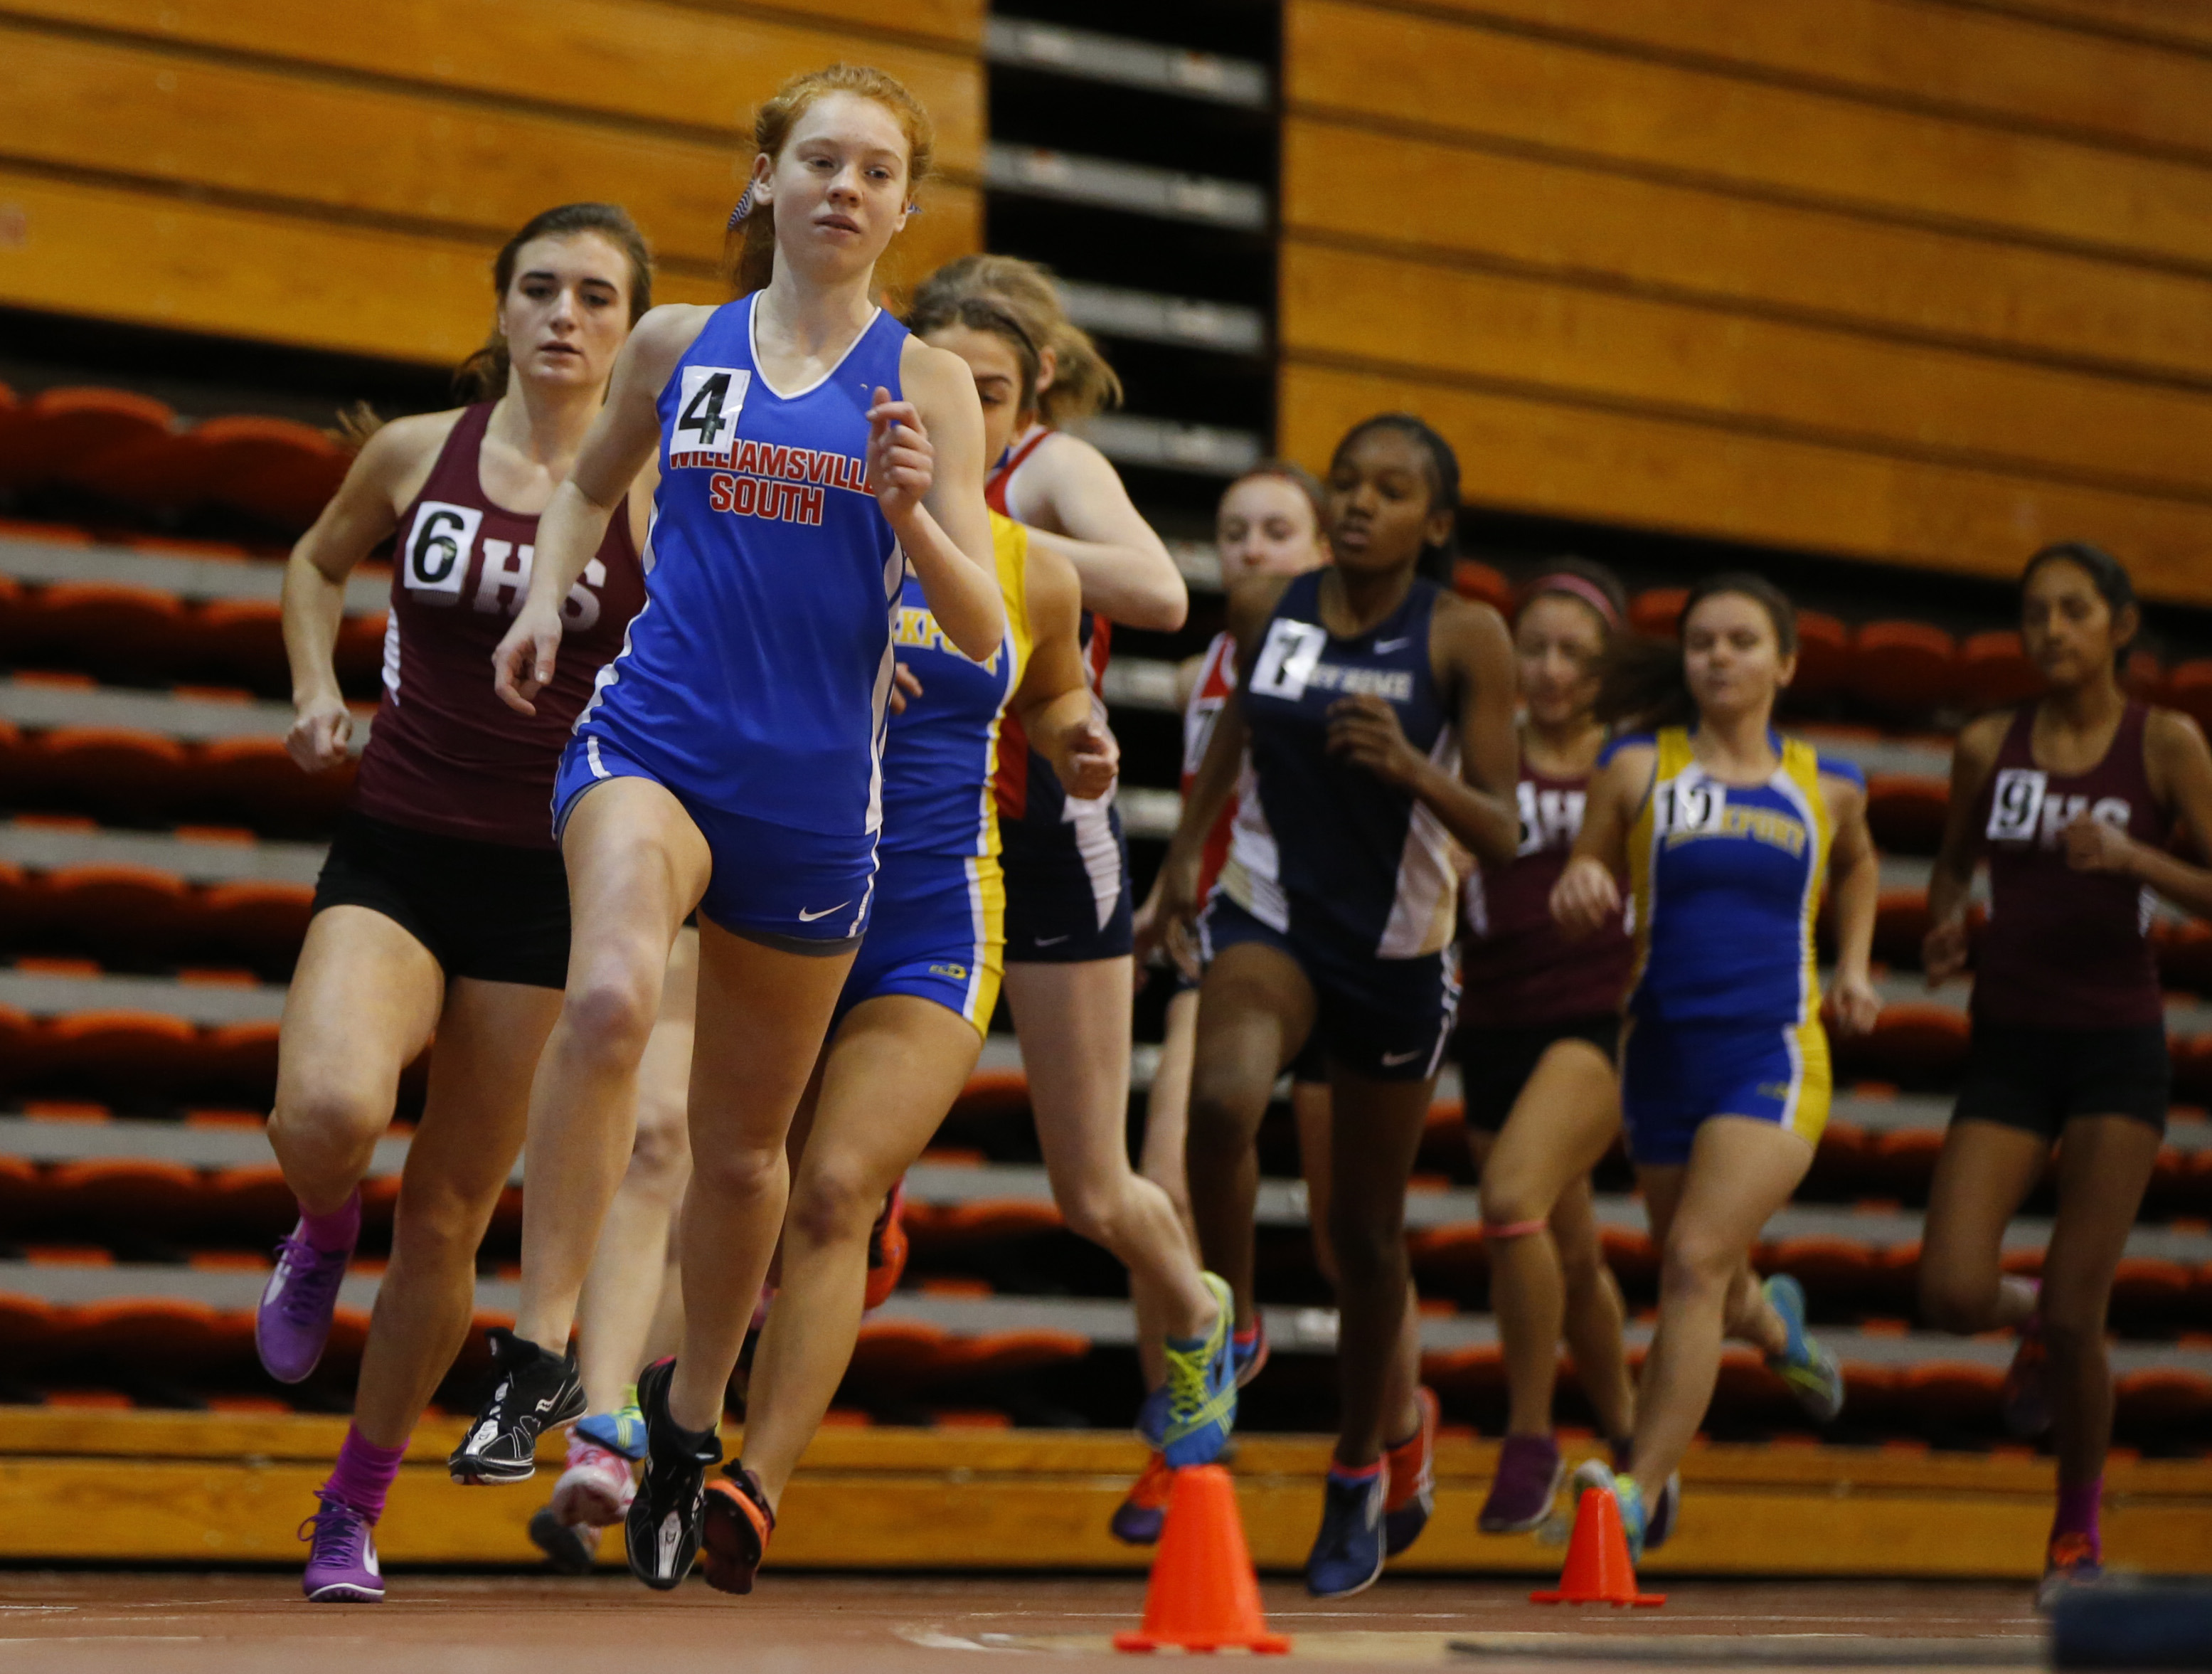 Girls compete in the 1000-meter run during a meet at Buffalo State on Jan. 7. (Harry Scull Jr./Buffalo News)